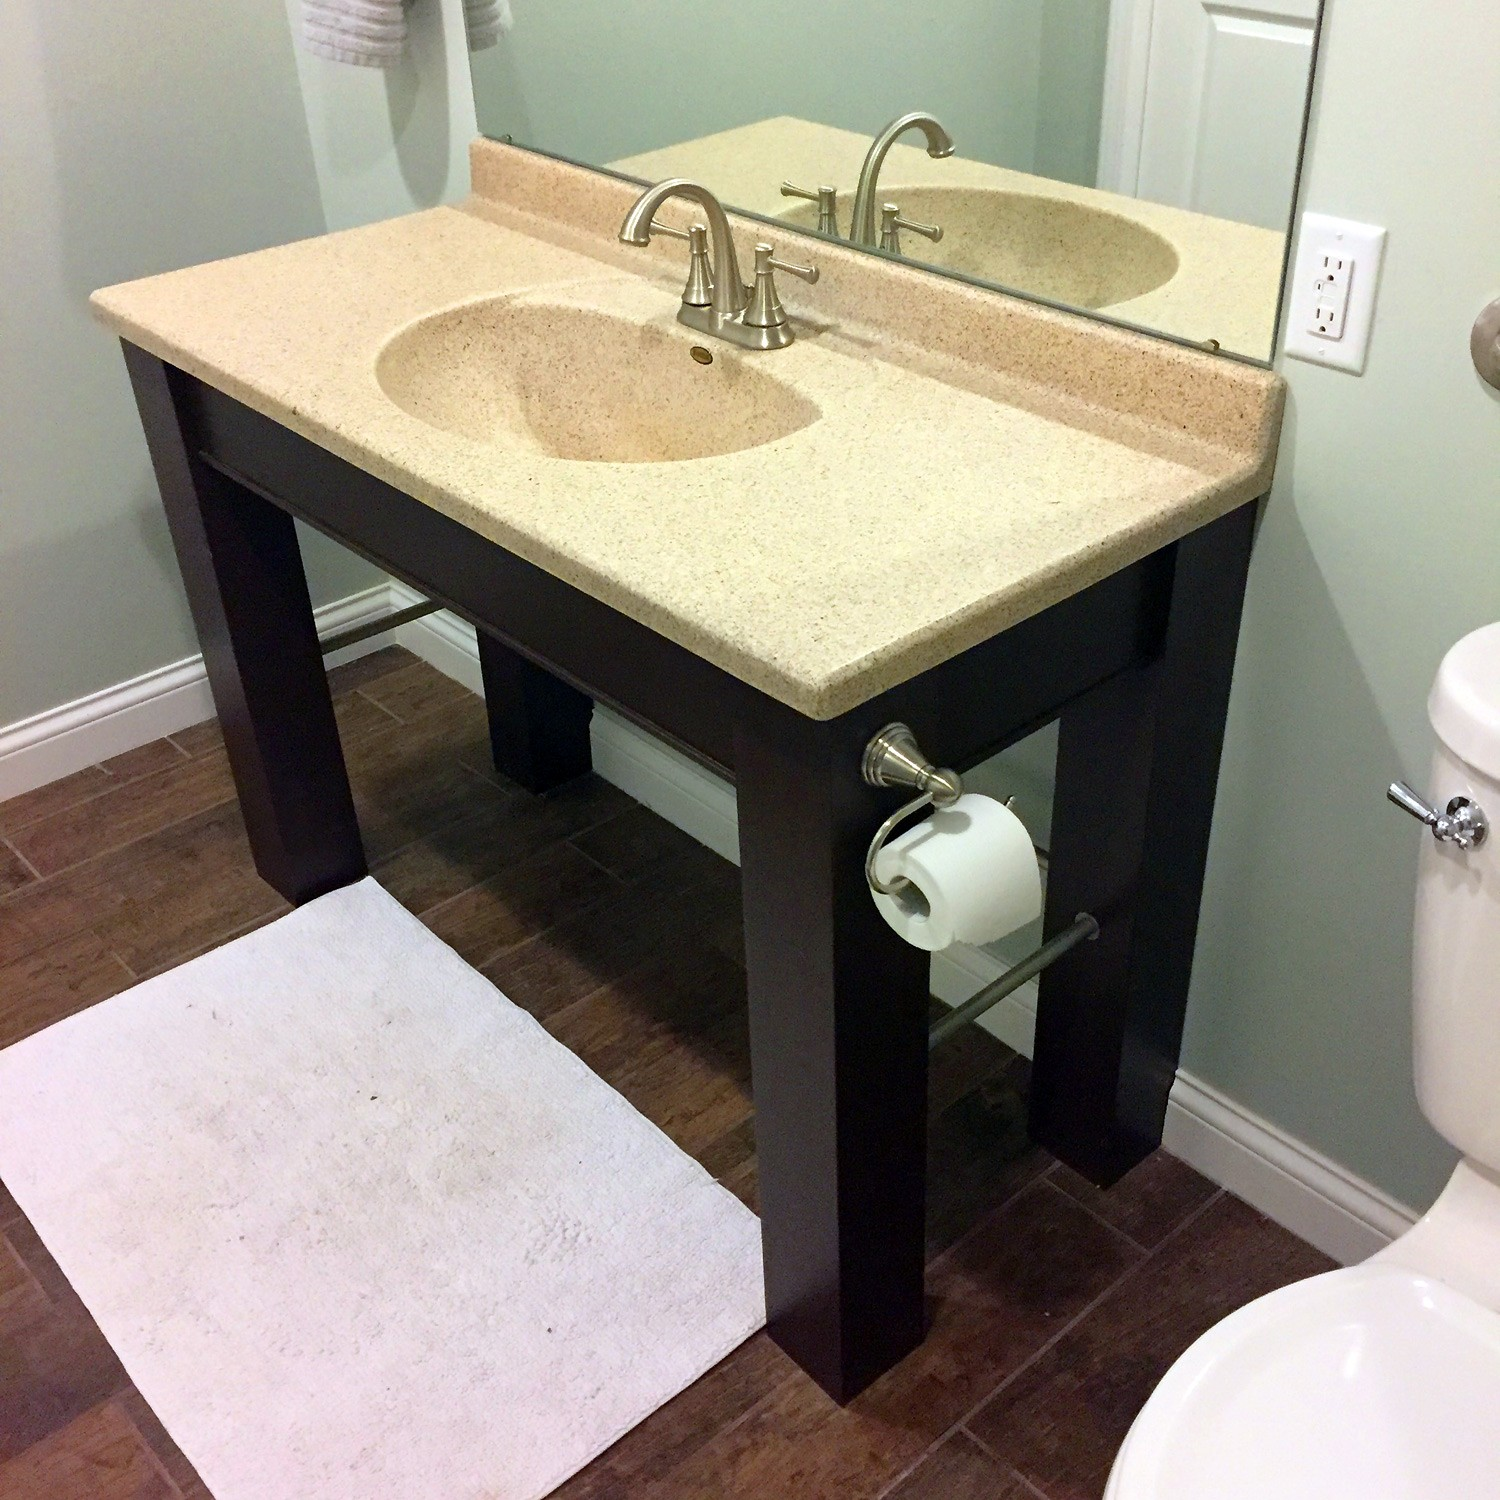 Ada Compliant Bathroom Vanity Lovely Make An Ada Pliant Vanity for Your Bathroom Photo